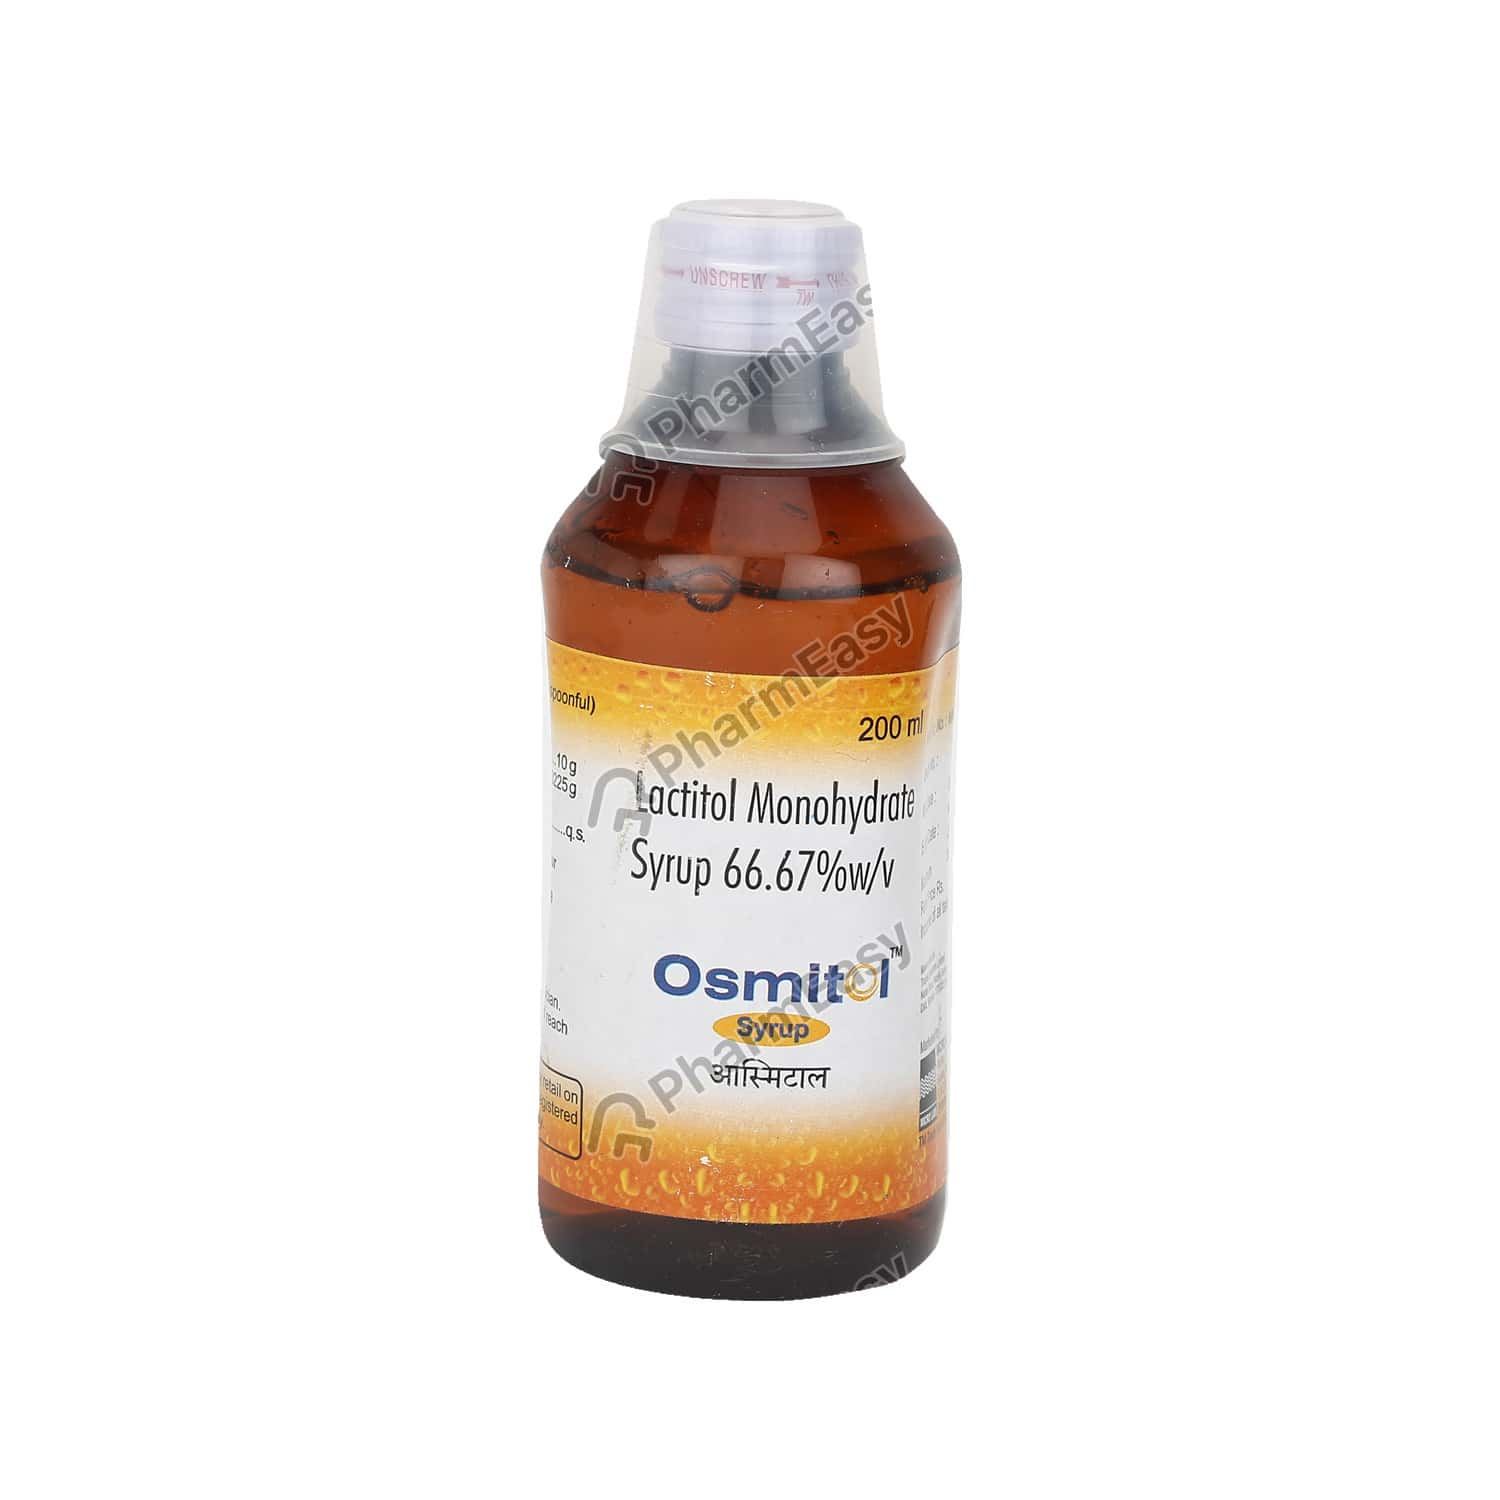 Osmitol Lemon Falv Syp 200ml